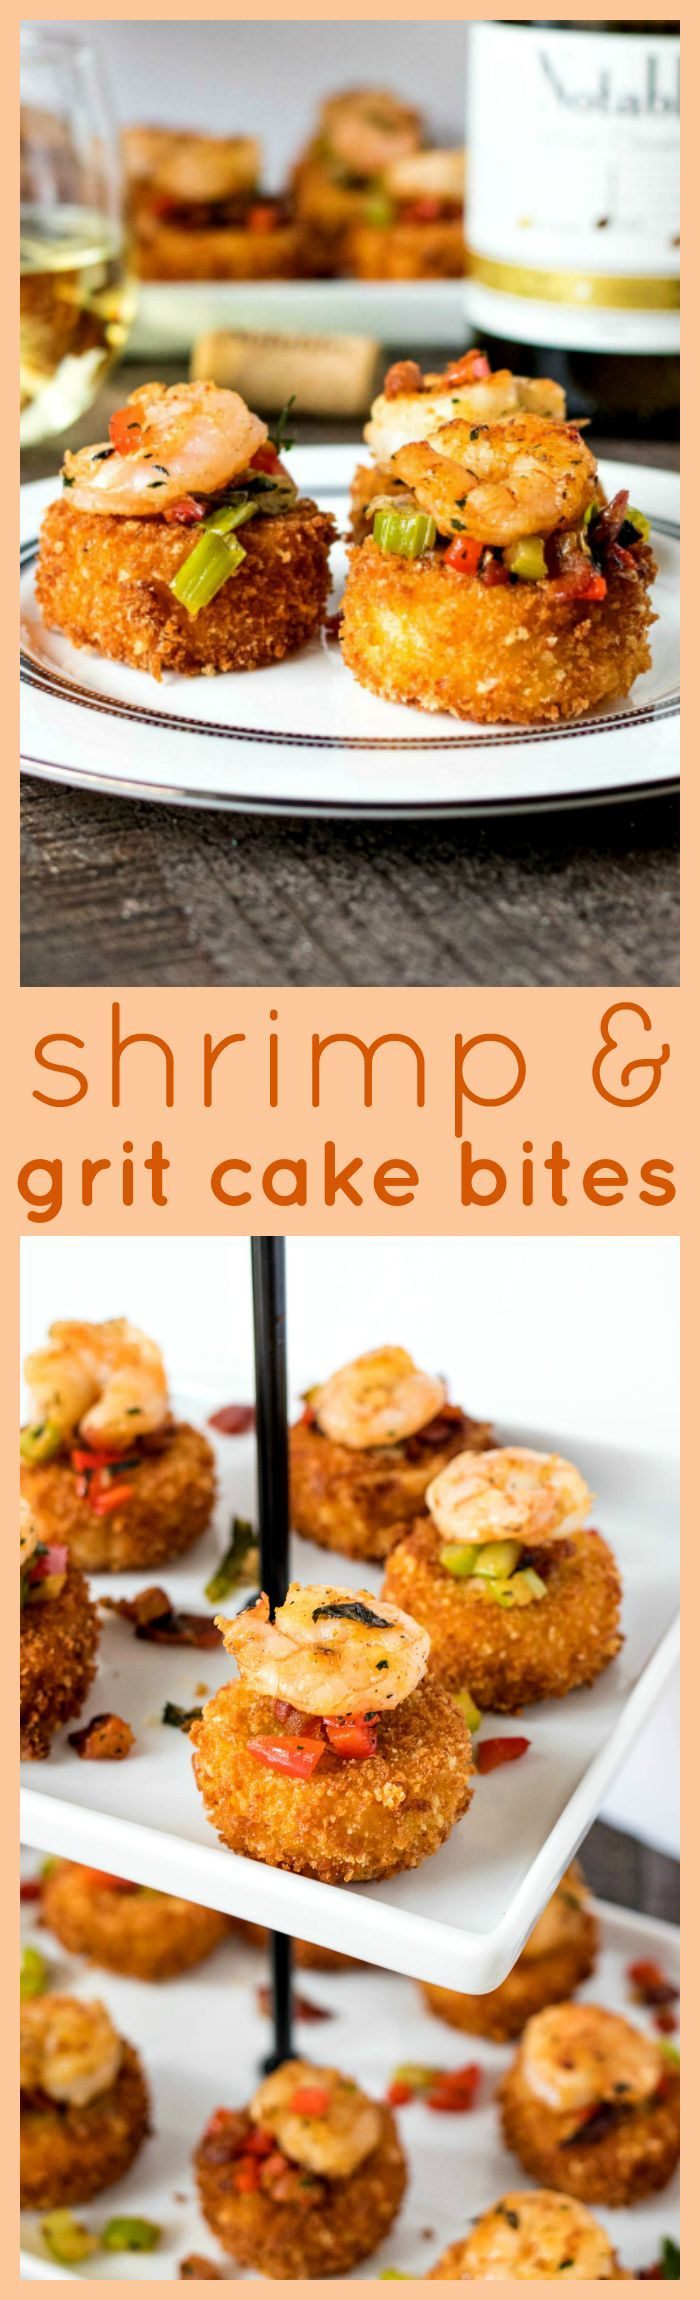 Shrimp & Grit Cake Bites - Ultra creamy grit patties are fried and served with a buttery sauteed shrimp and crispy bacon to create an appetizer that your guests will go crazy for. Pairs perfectly with the flavors of Chardonnay wine! #Chardonnation #SpringWine #ad msg 4 21+